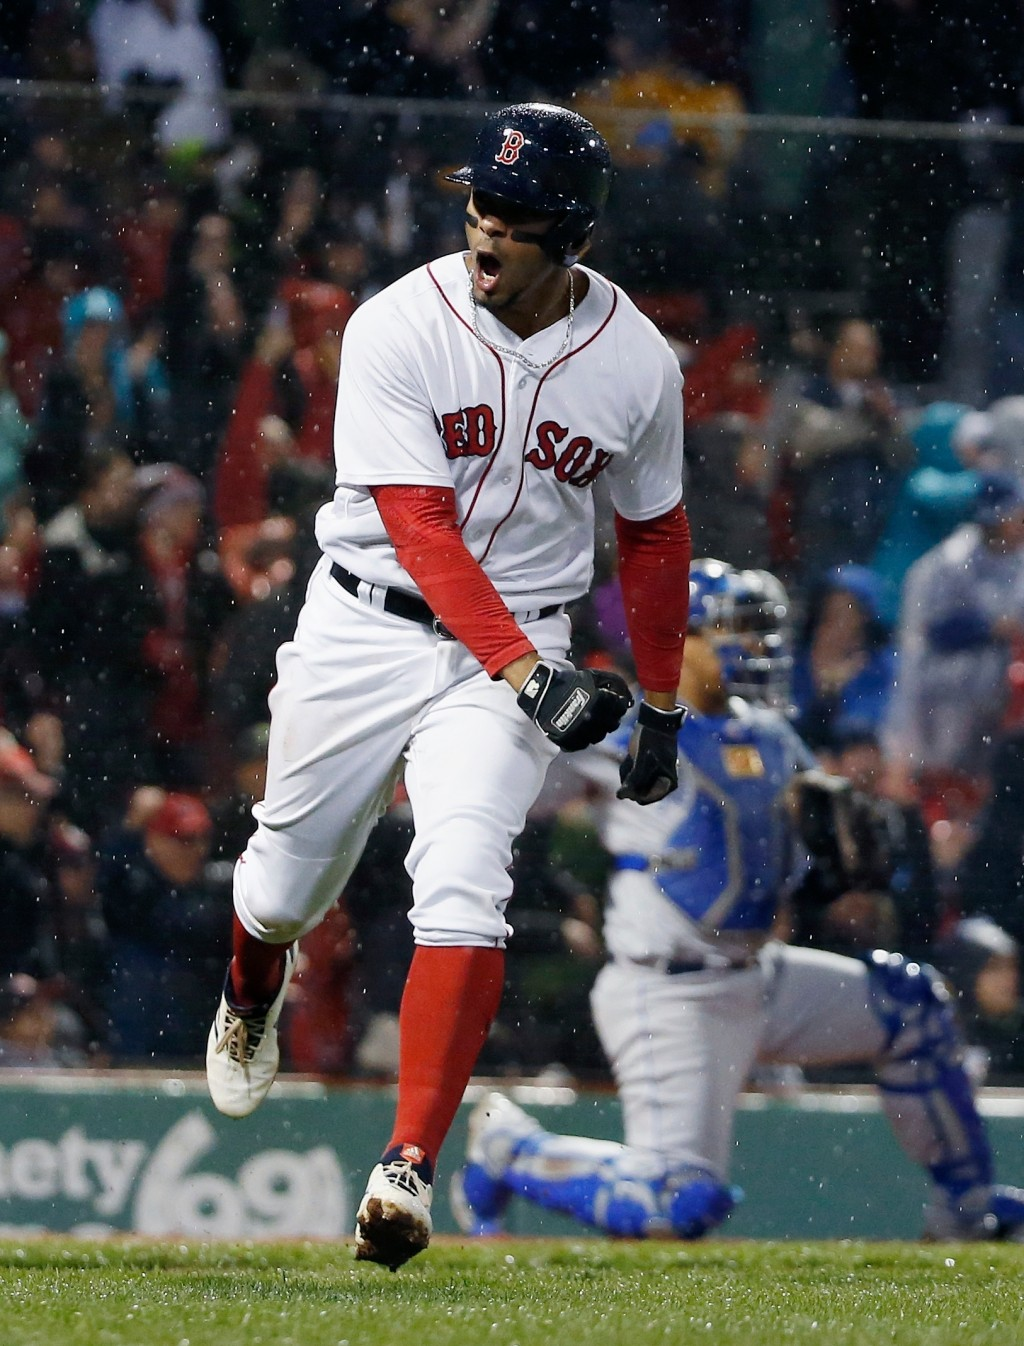 Boston Red Sox's Xander Bogaerts reacts after hitting a grand slam during the third inning of a baseball game against the Kansas City Royals in Boston...